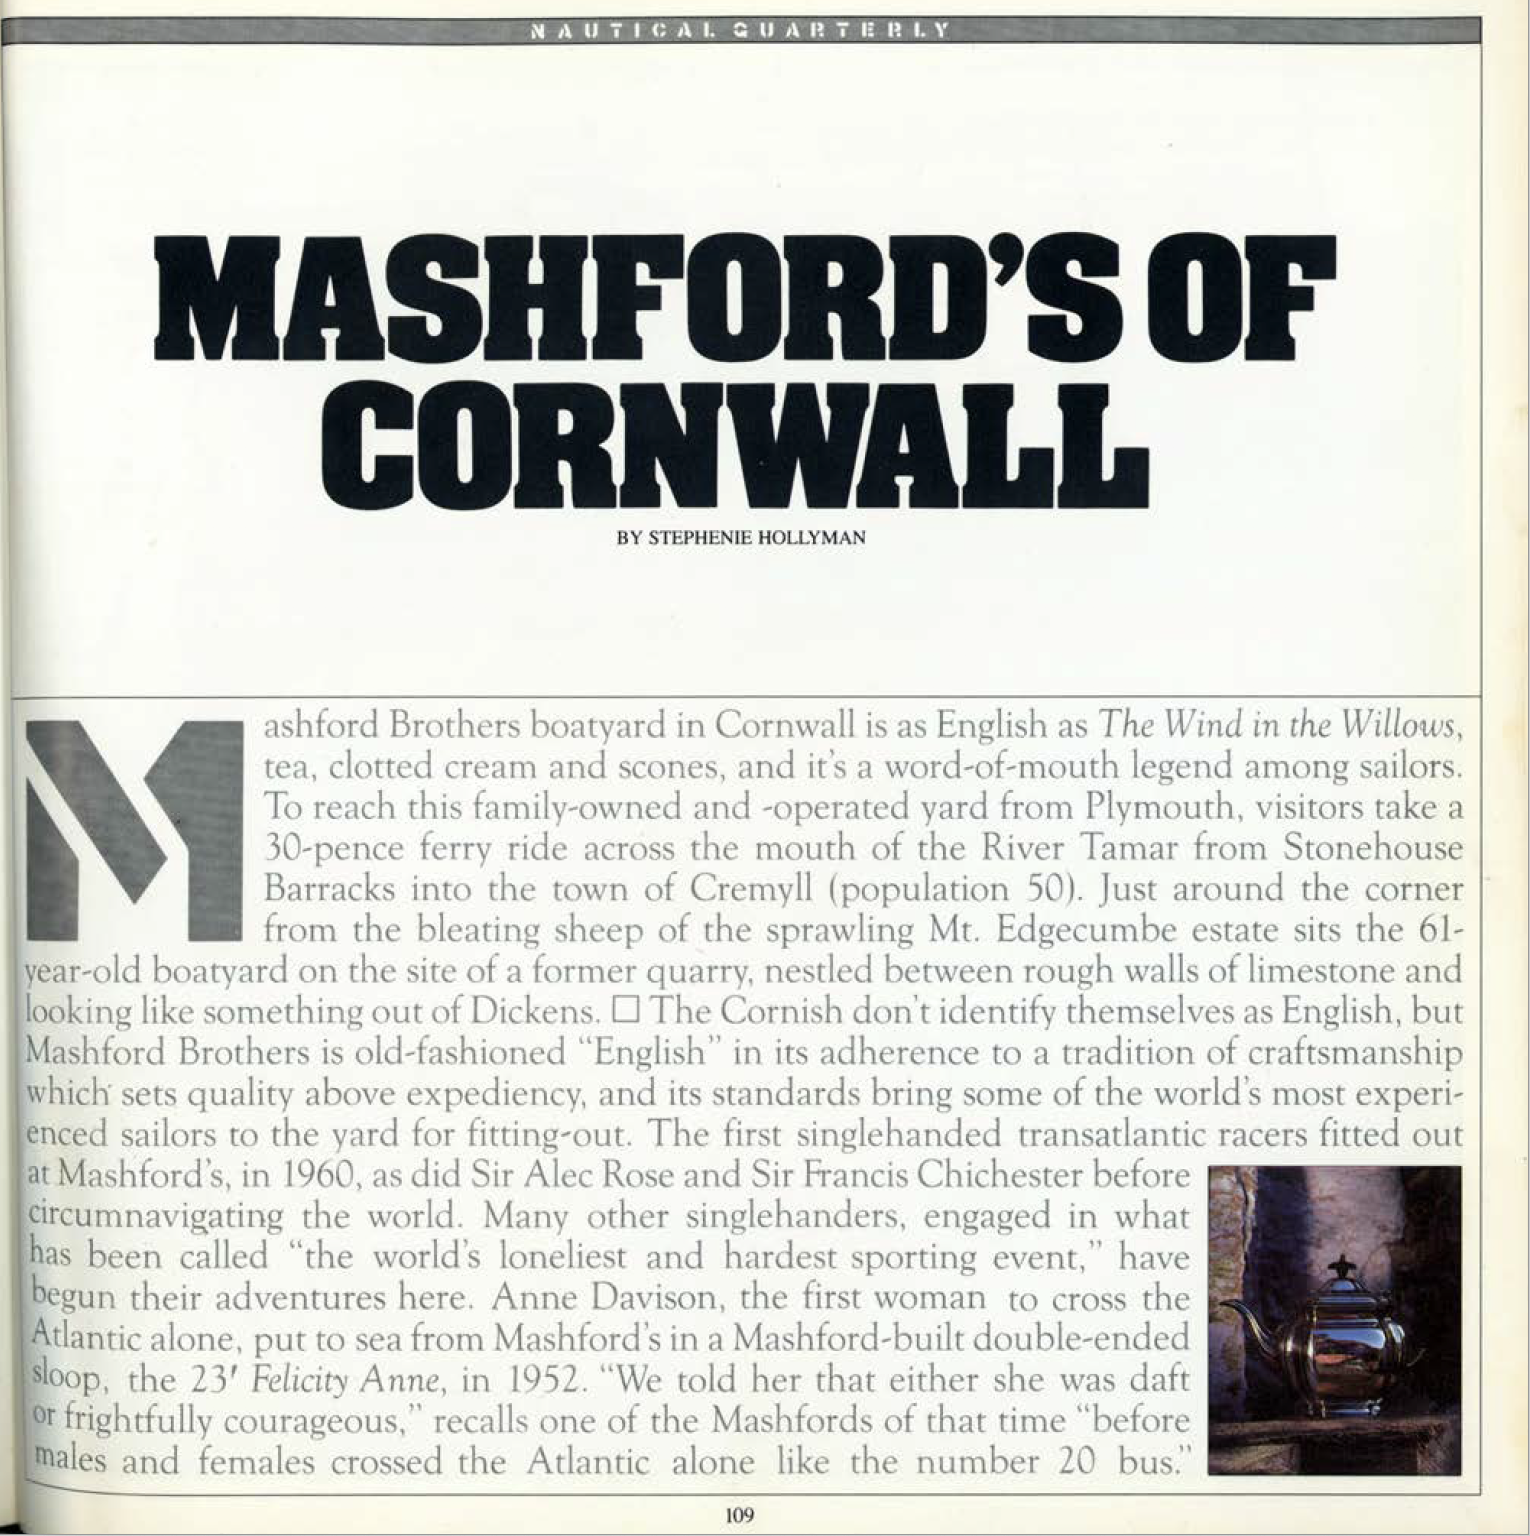 Mashfords of Cornwall